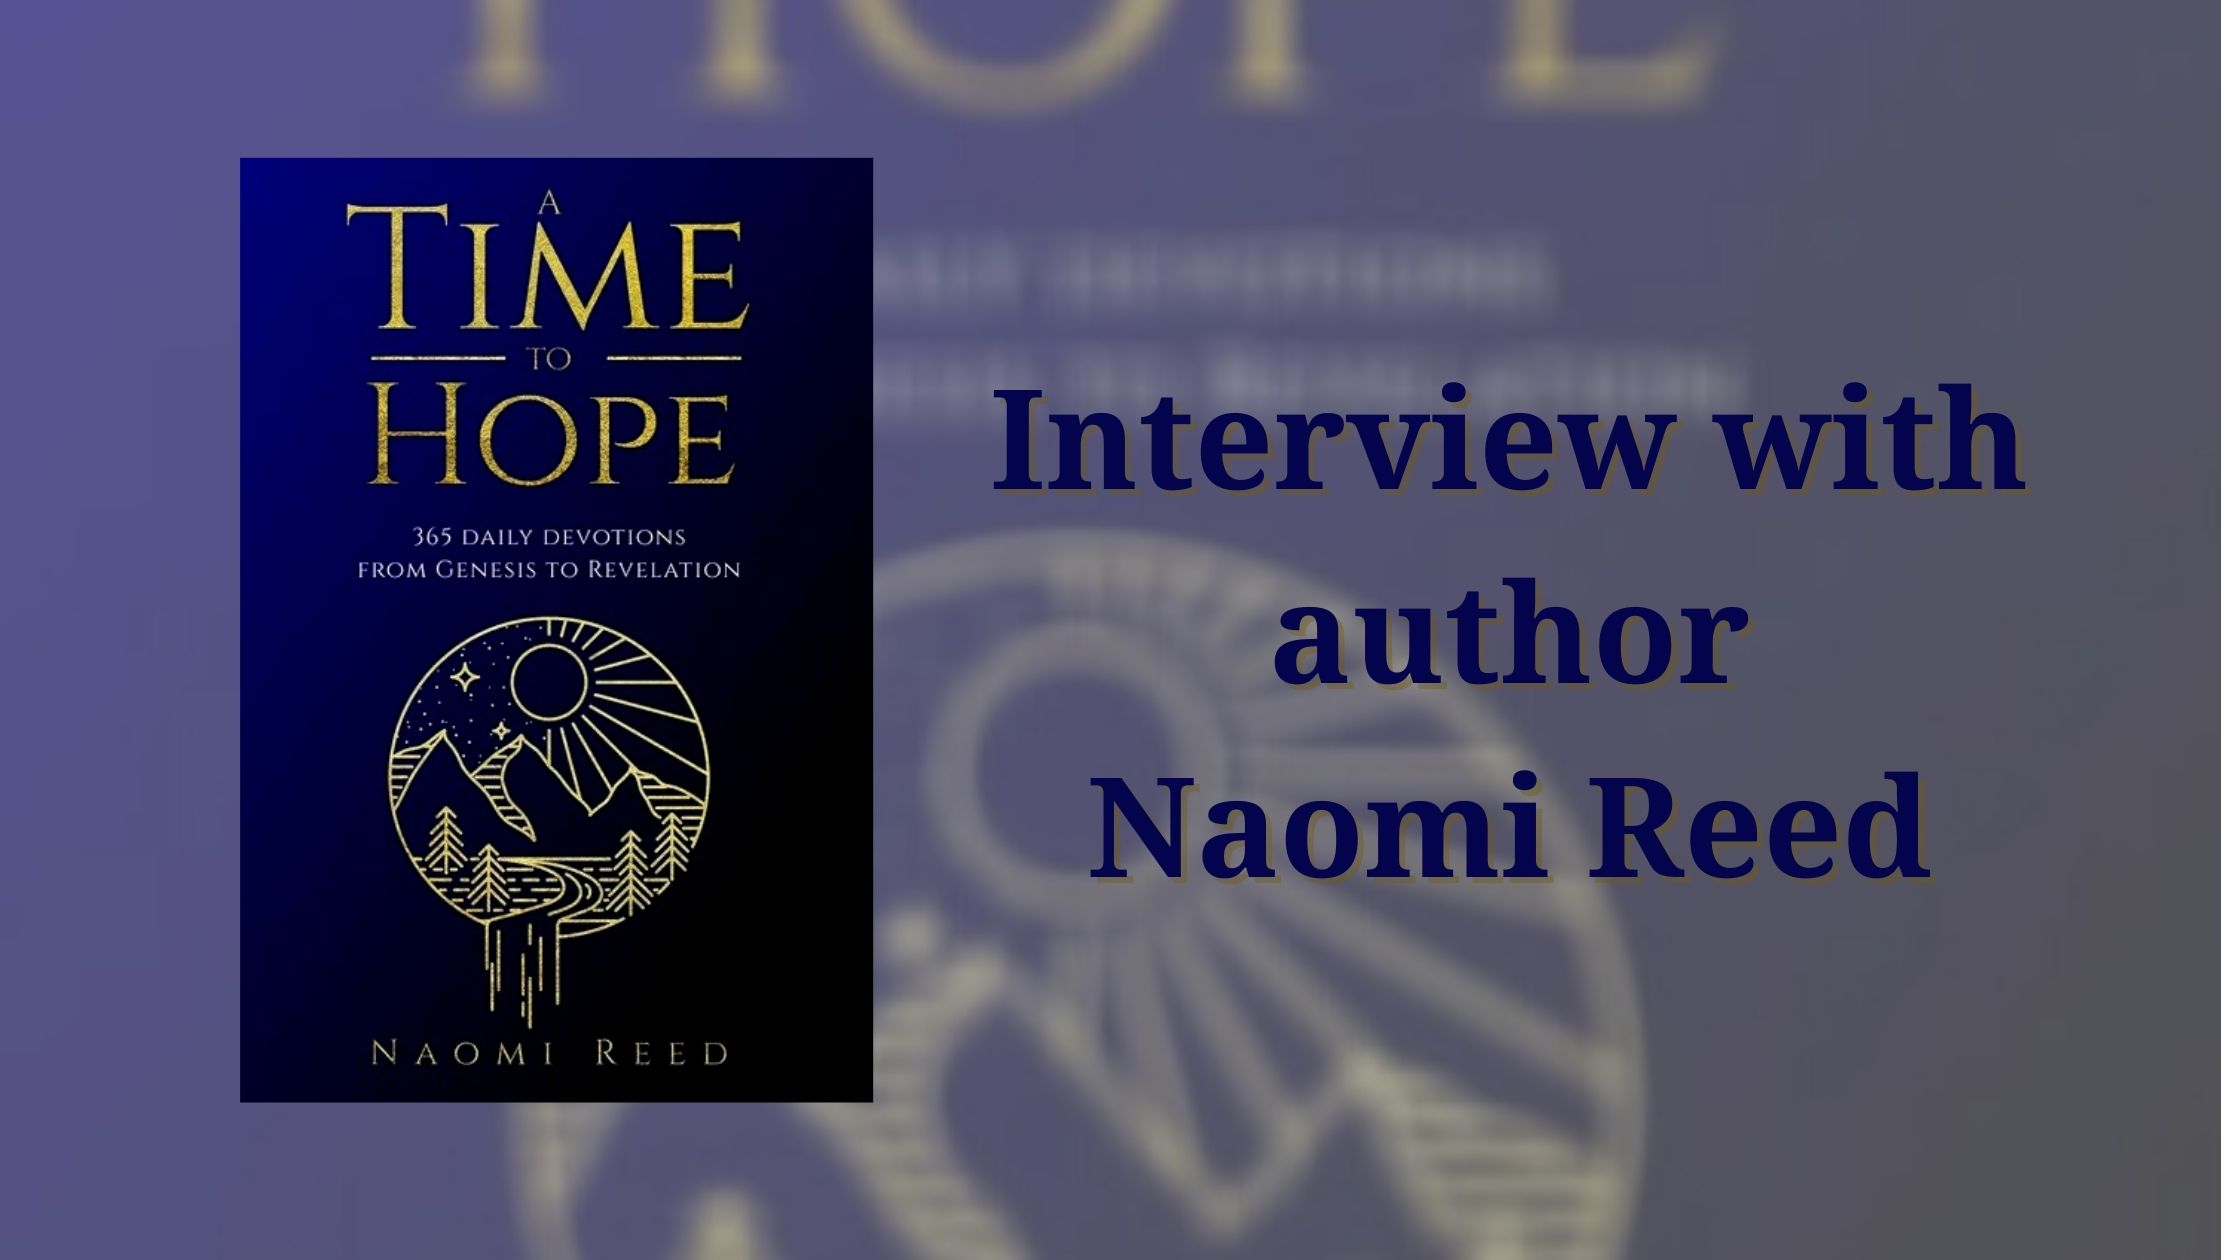 Author Naomi Reed talks about her book A Time to Hope